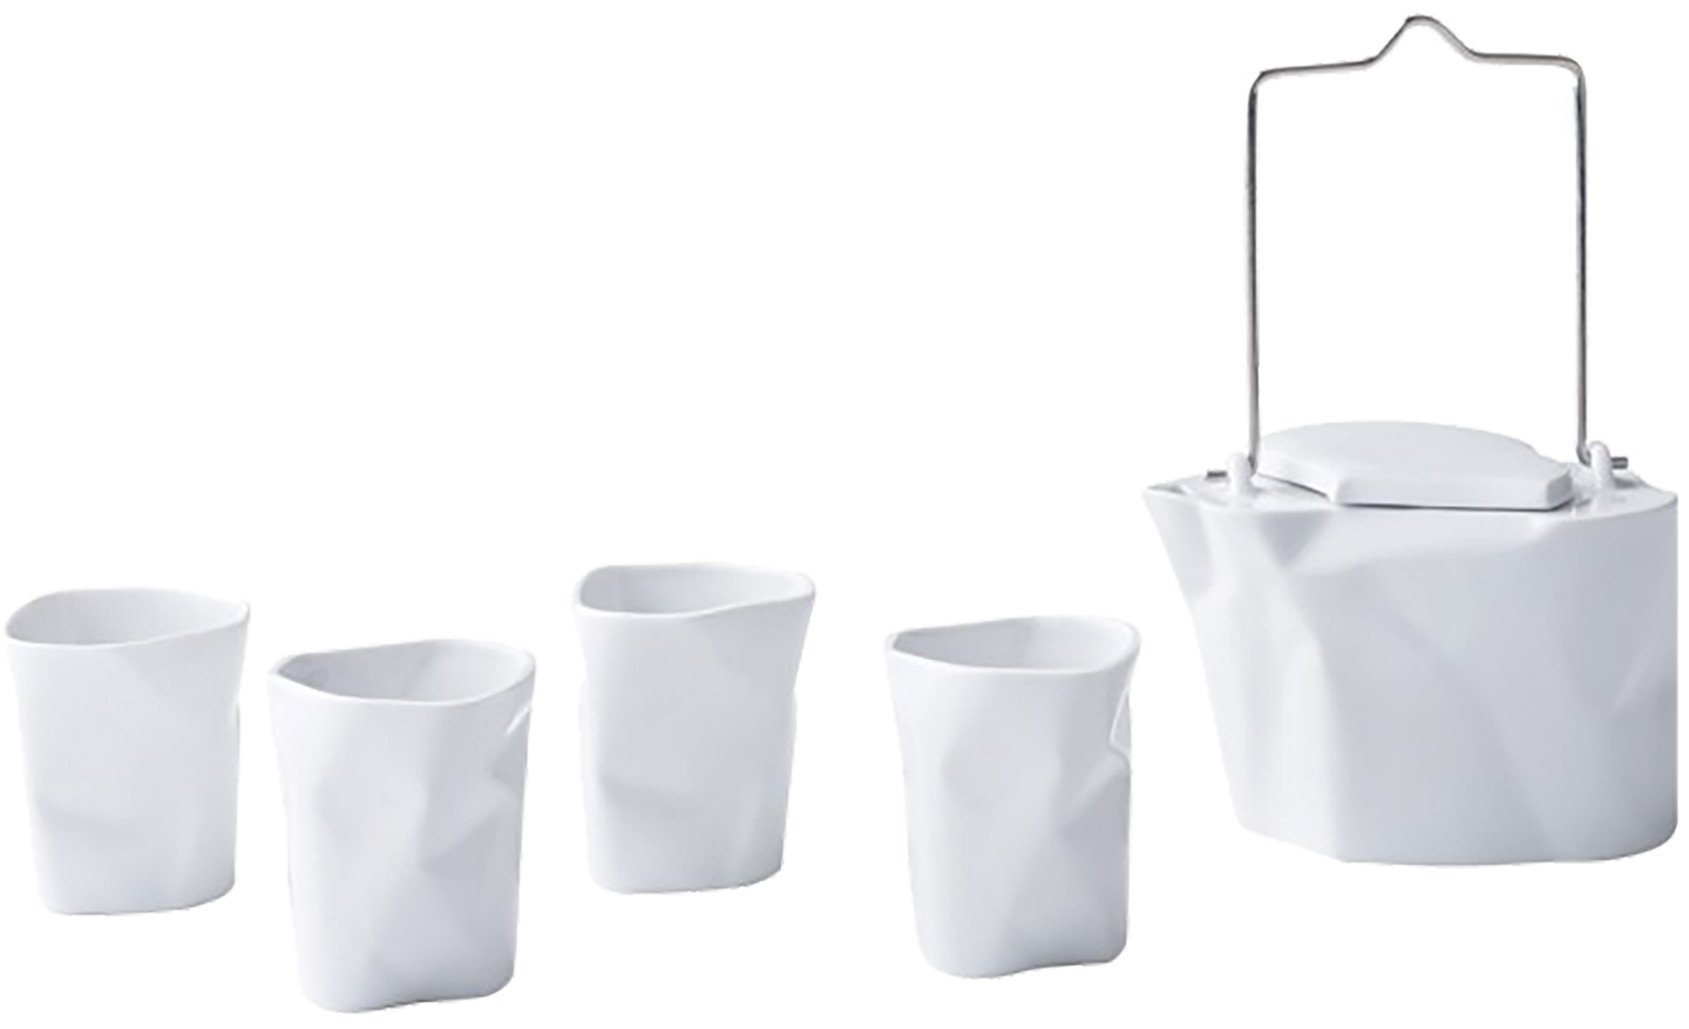 White Bent Tea Set by Ćmielów Design Studio for Modus Design, Poland